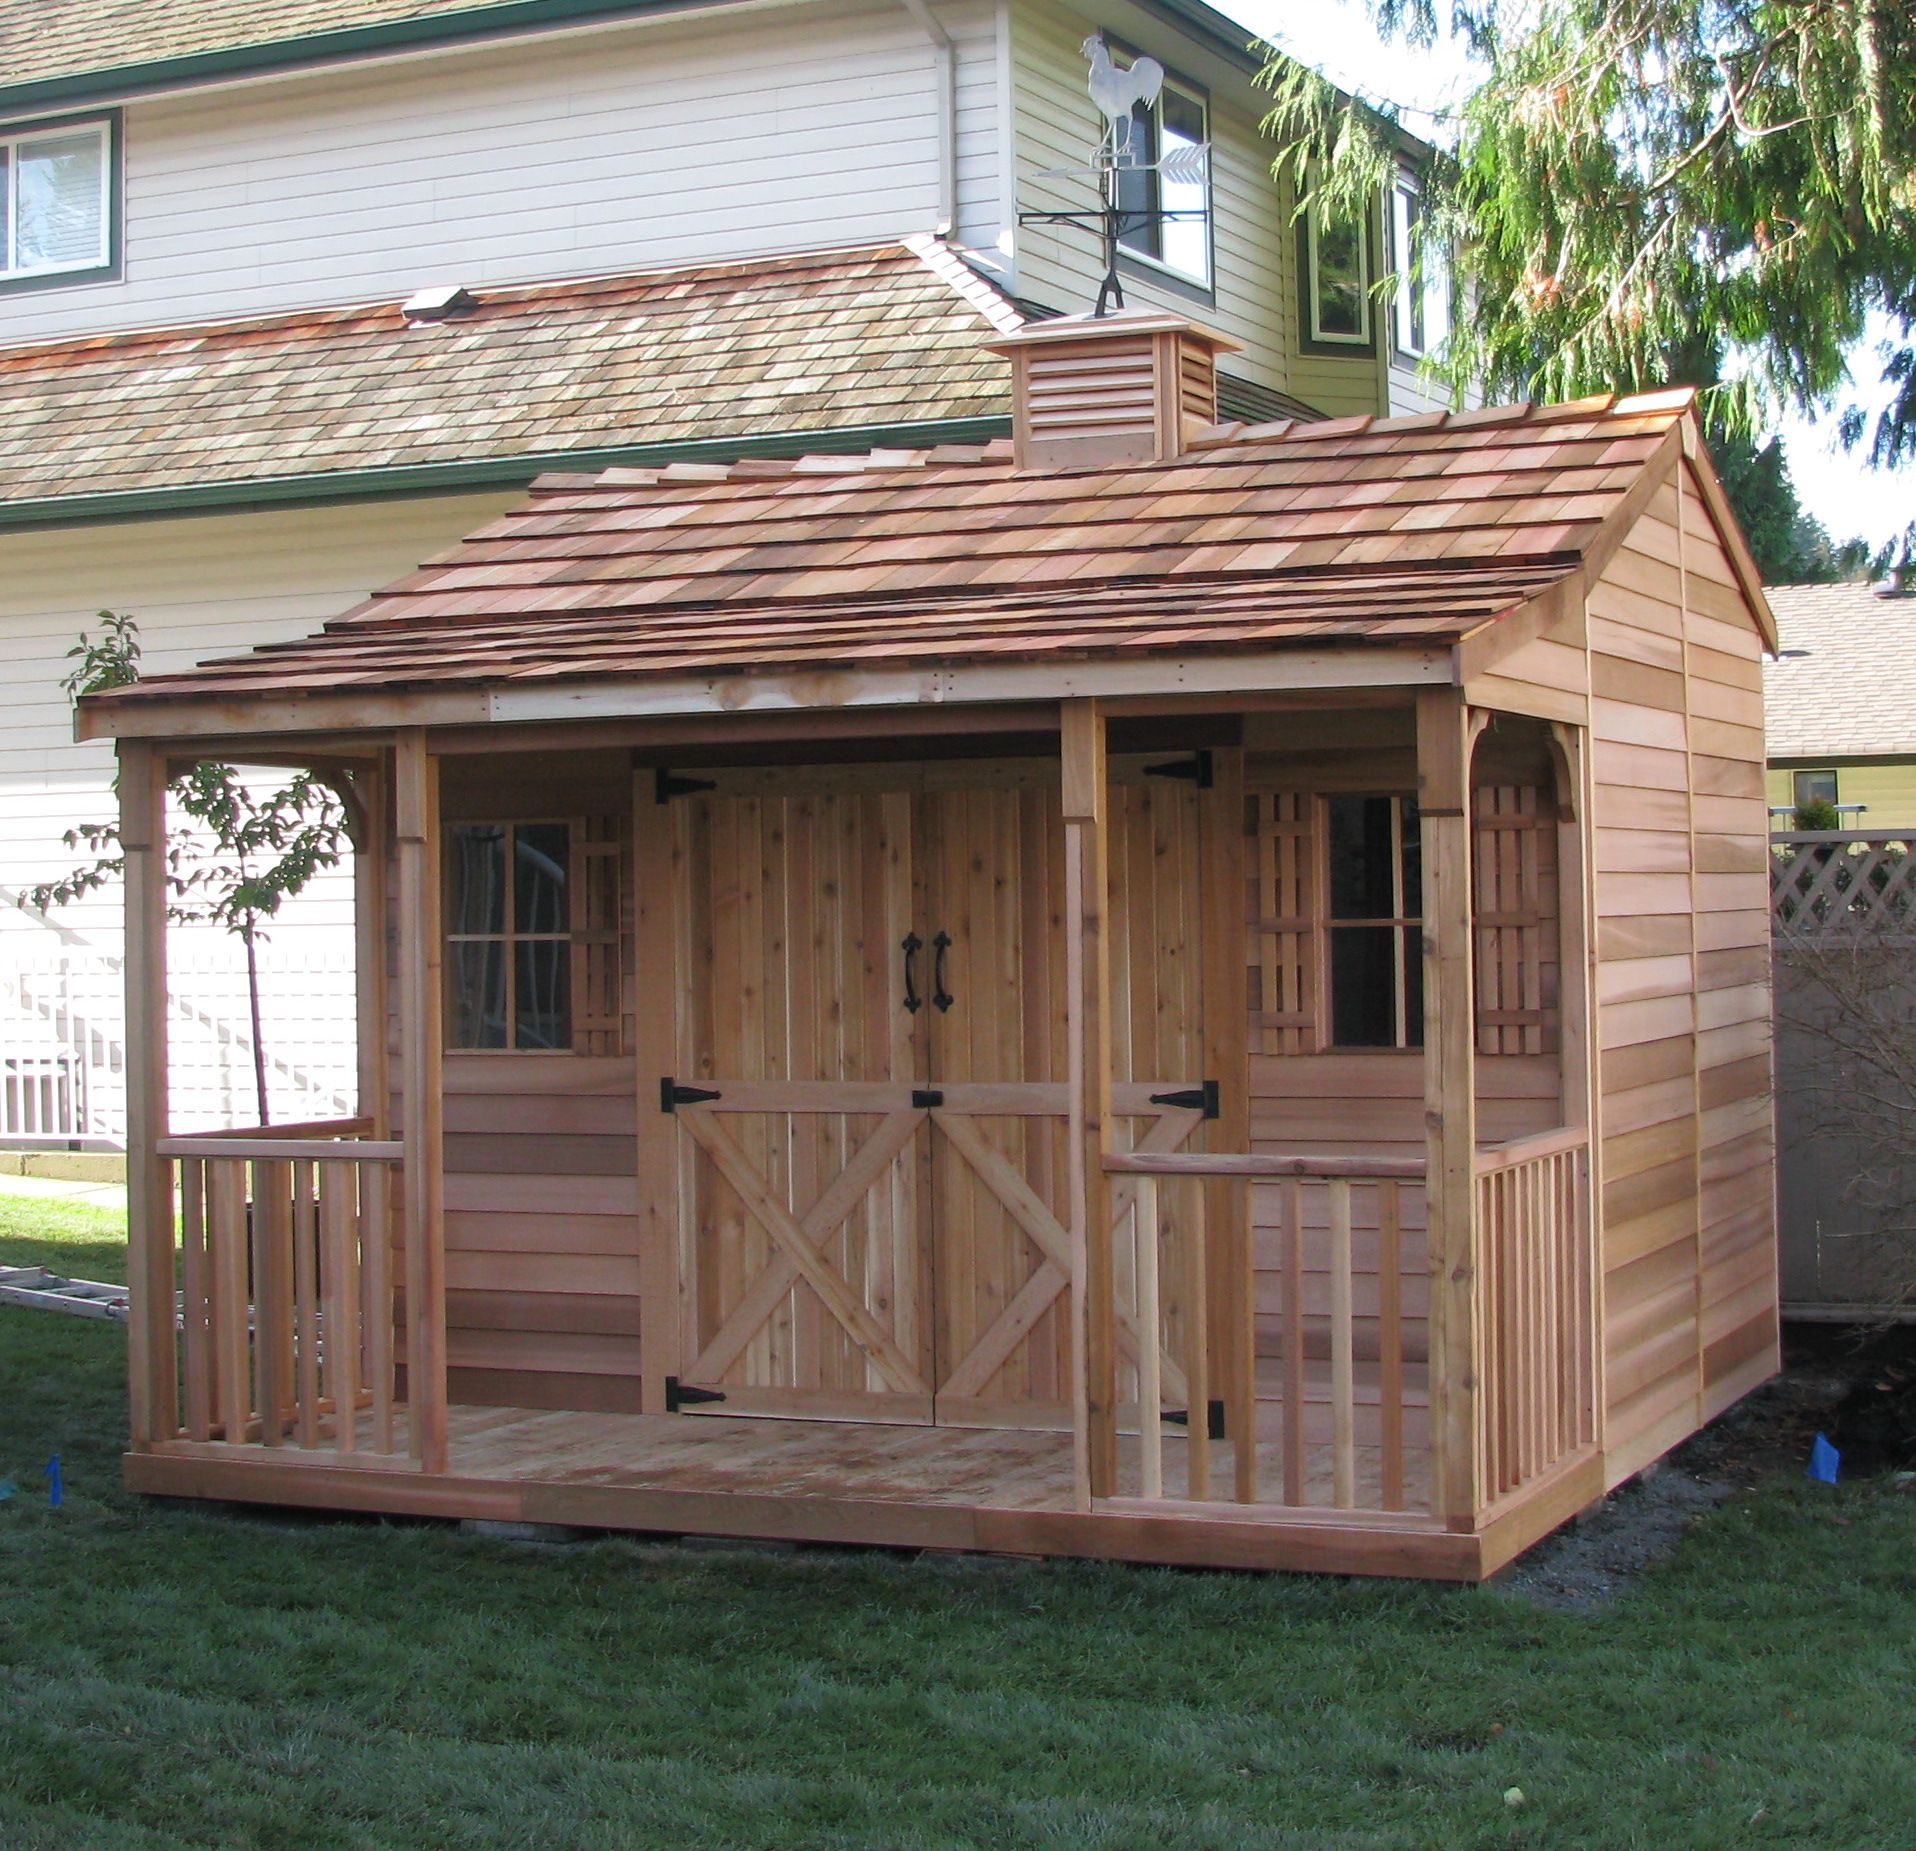 Ranchhouses Prefab Cottage Kits Tiny Houses In 2019 400 x 300